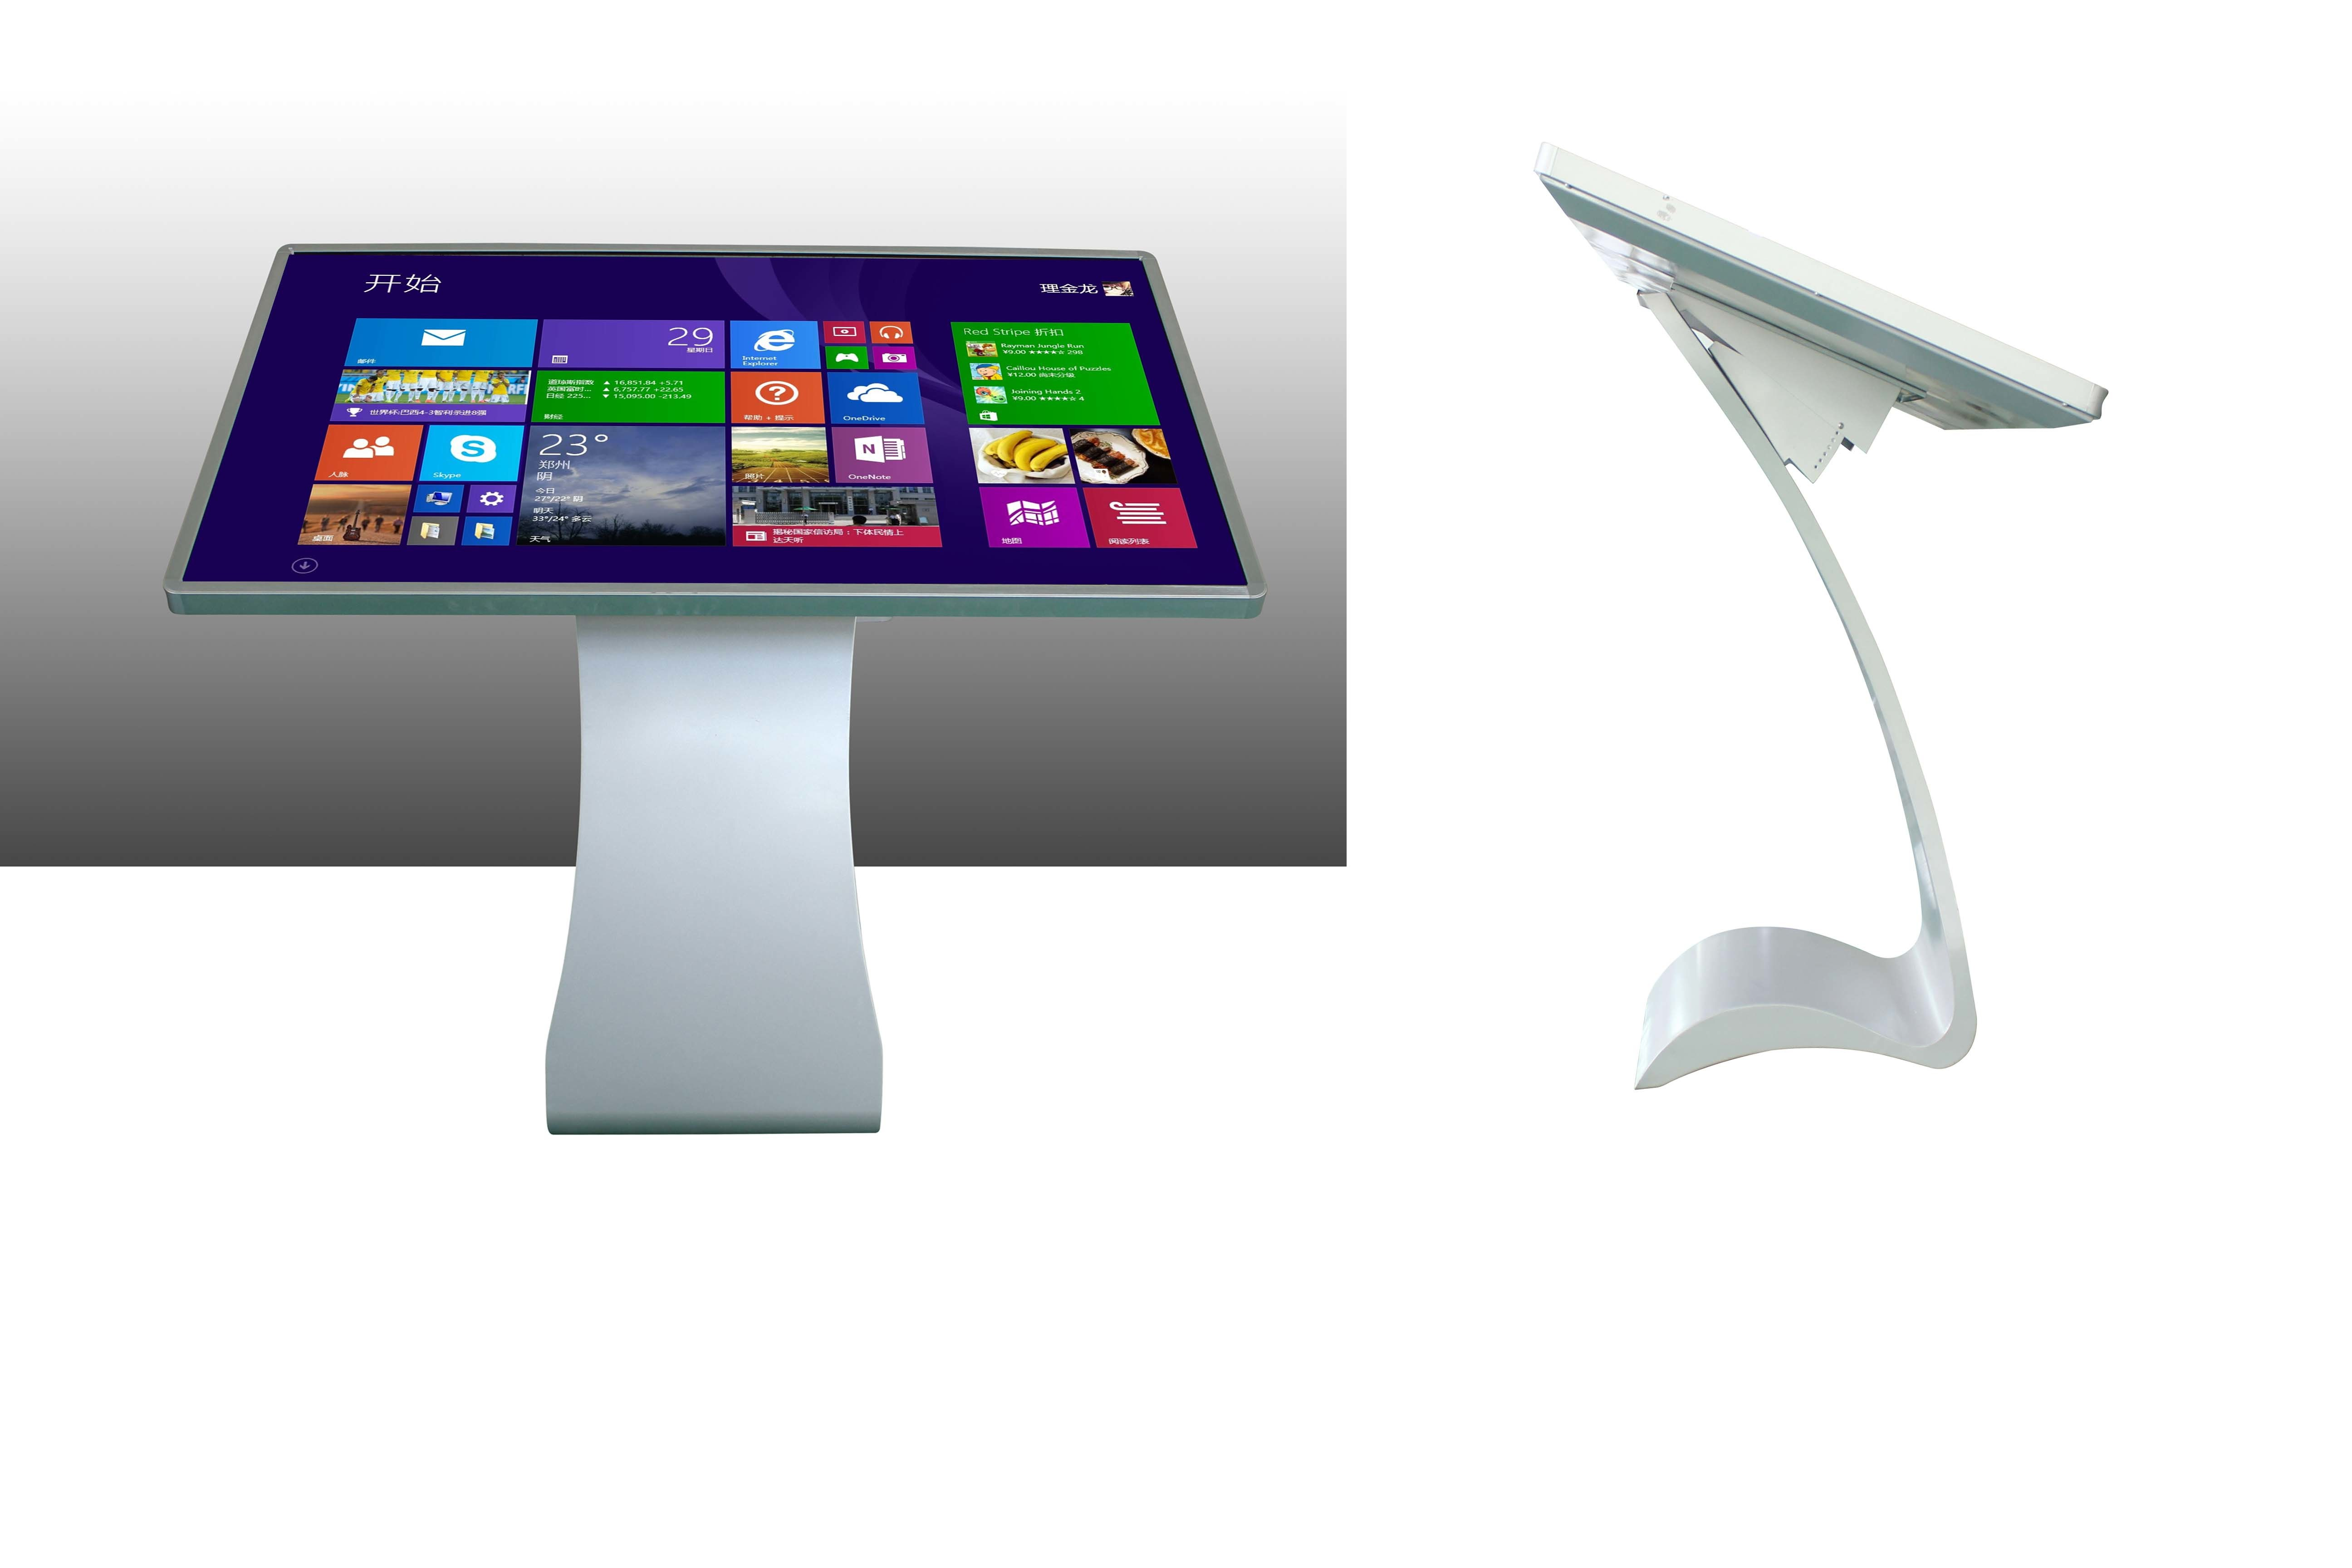 55 Inch All in One Mall Touch Screen Kiosk in The Supermarket, Bank and Hotel